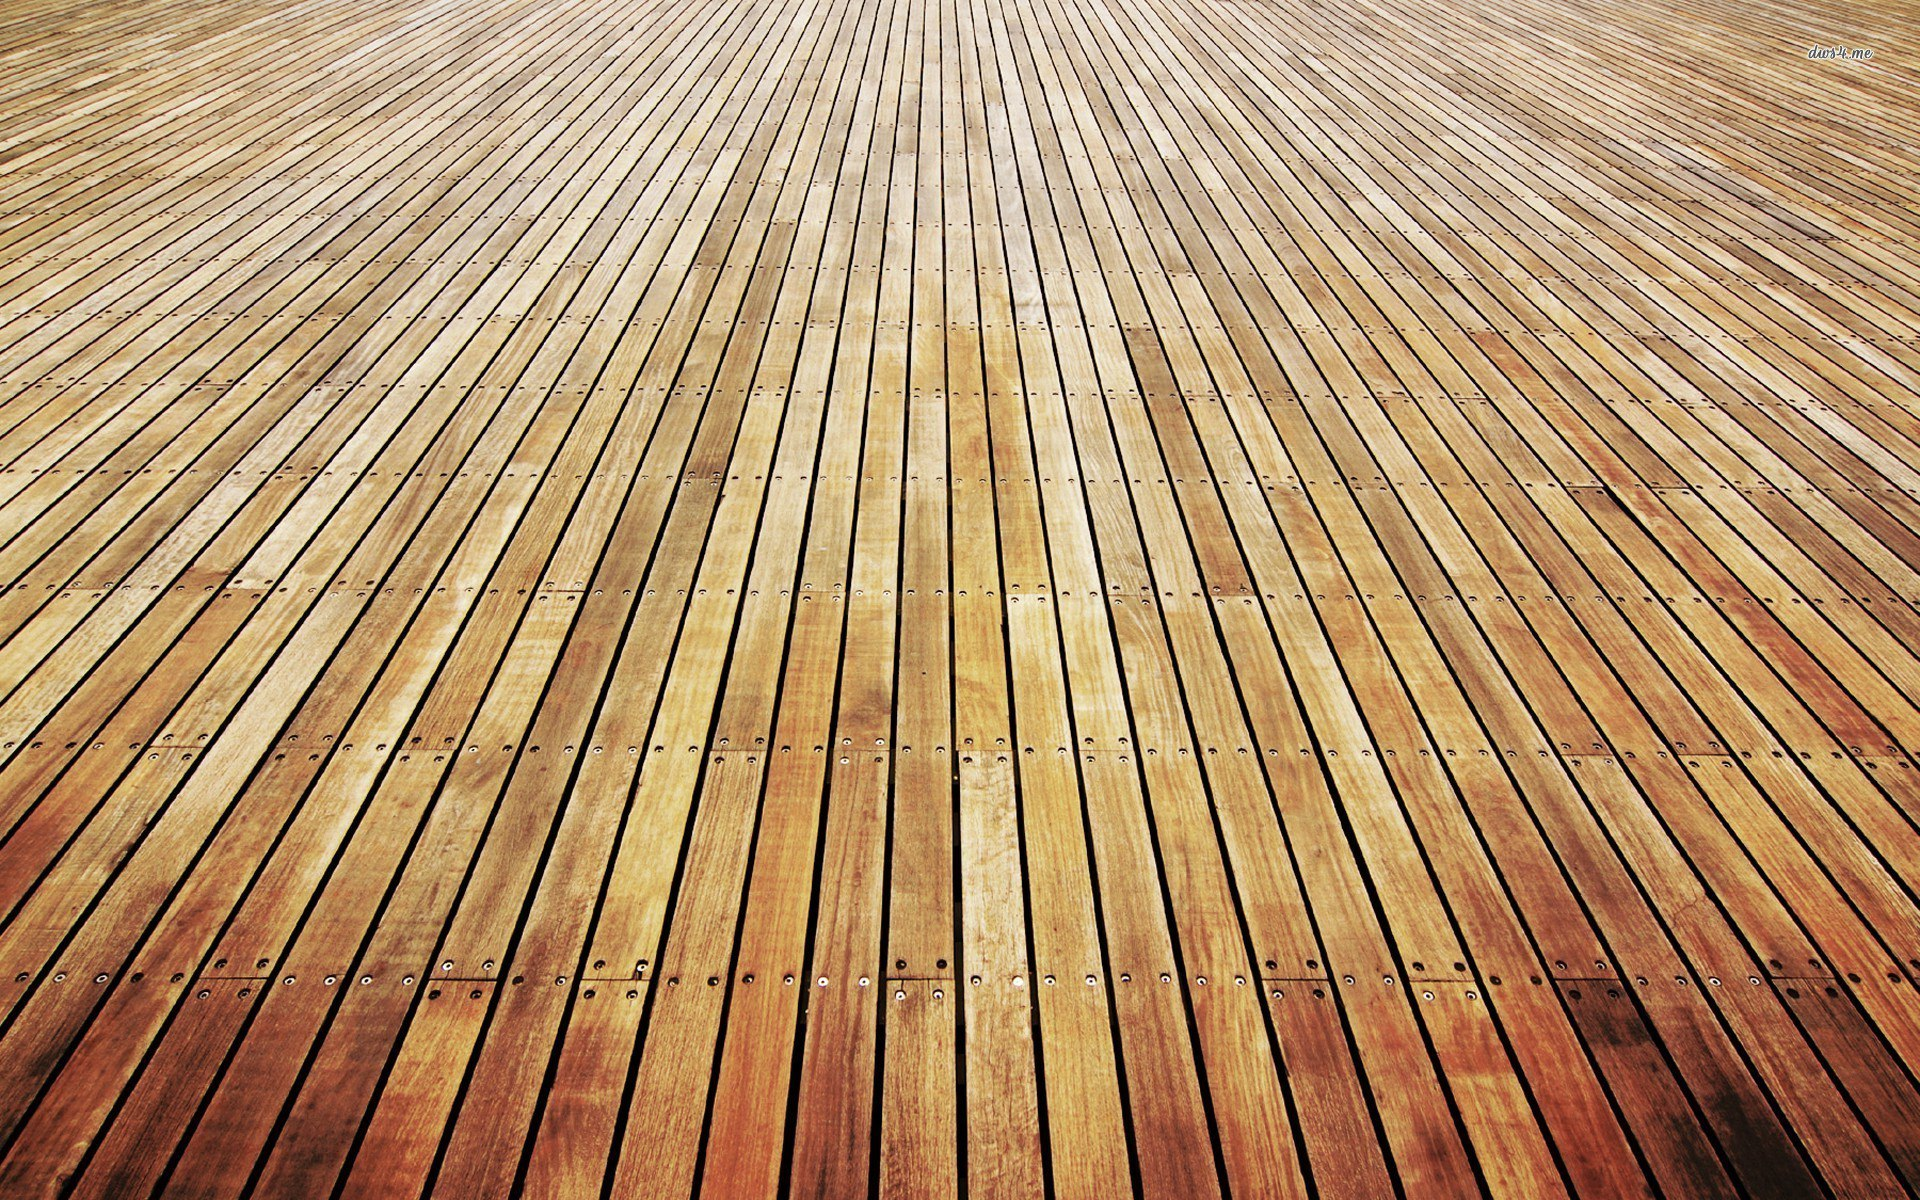 8790-wood-floor-1920x1200-photography-wallpaper